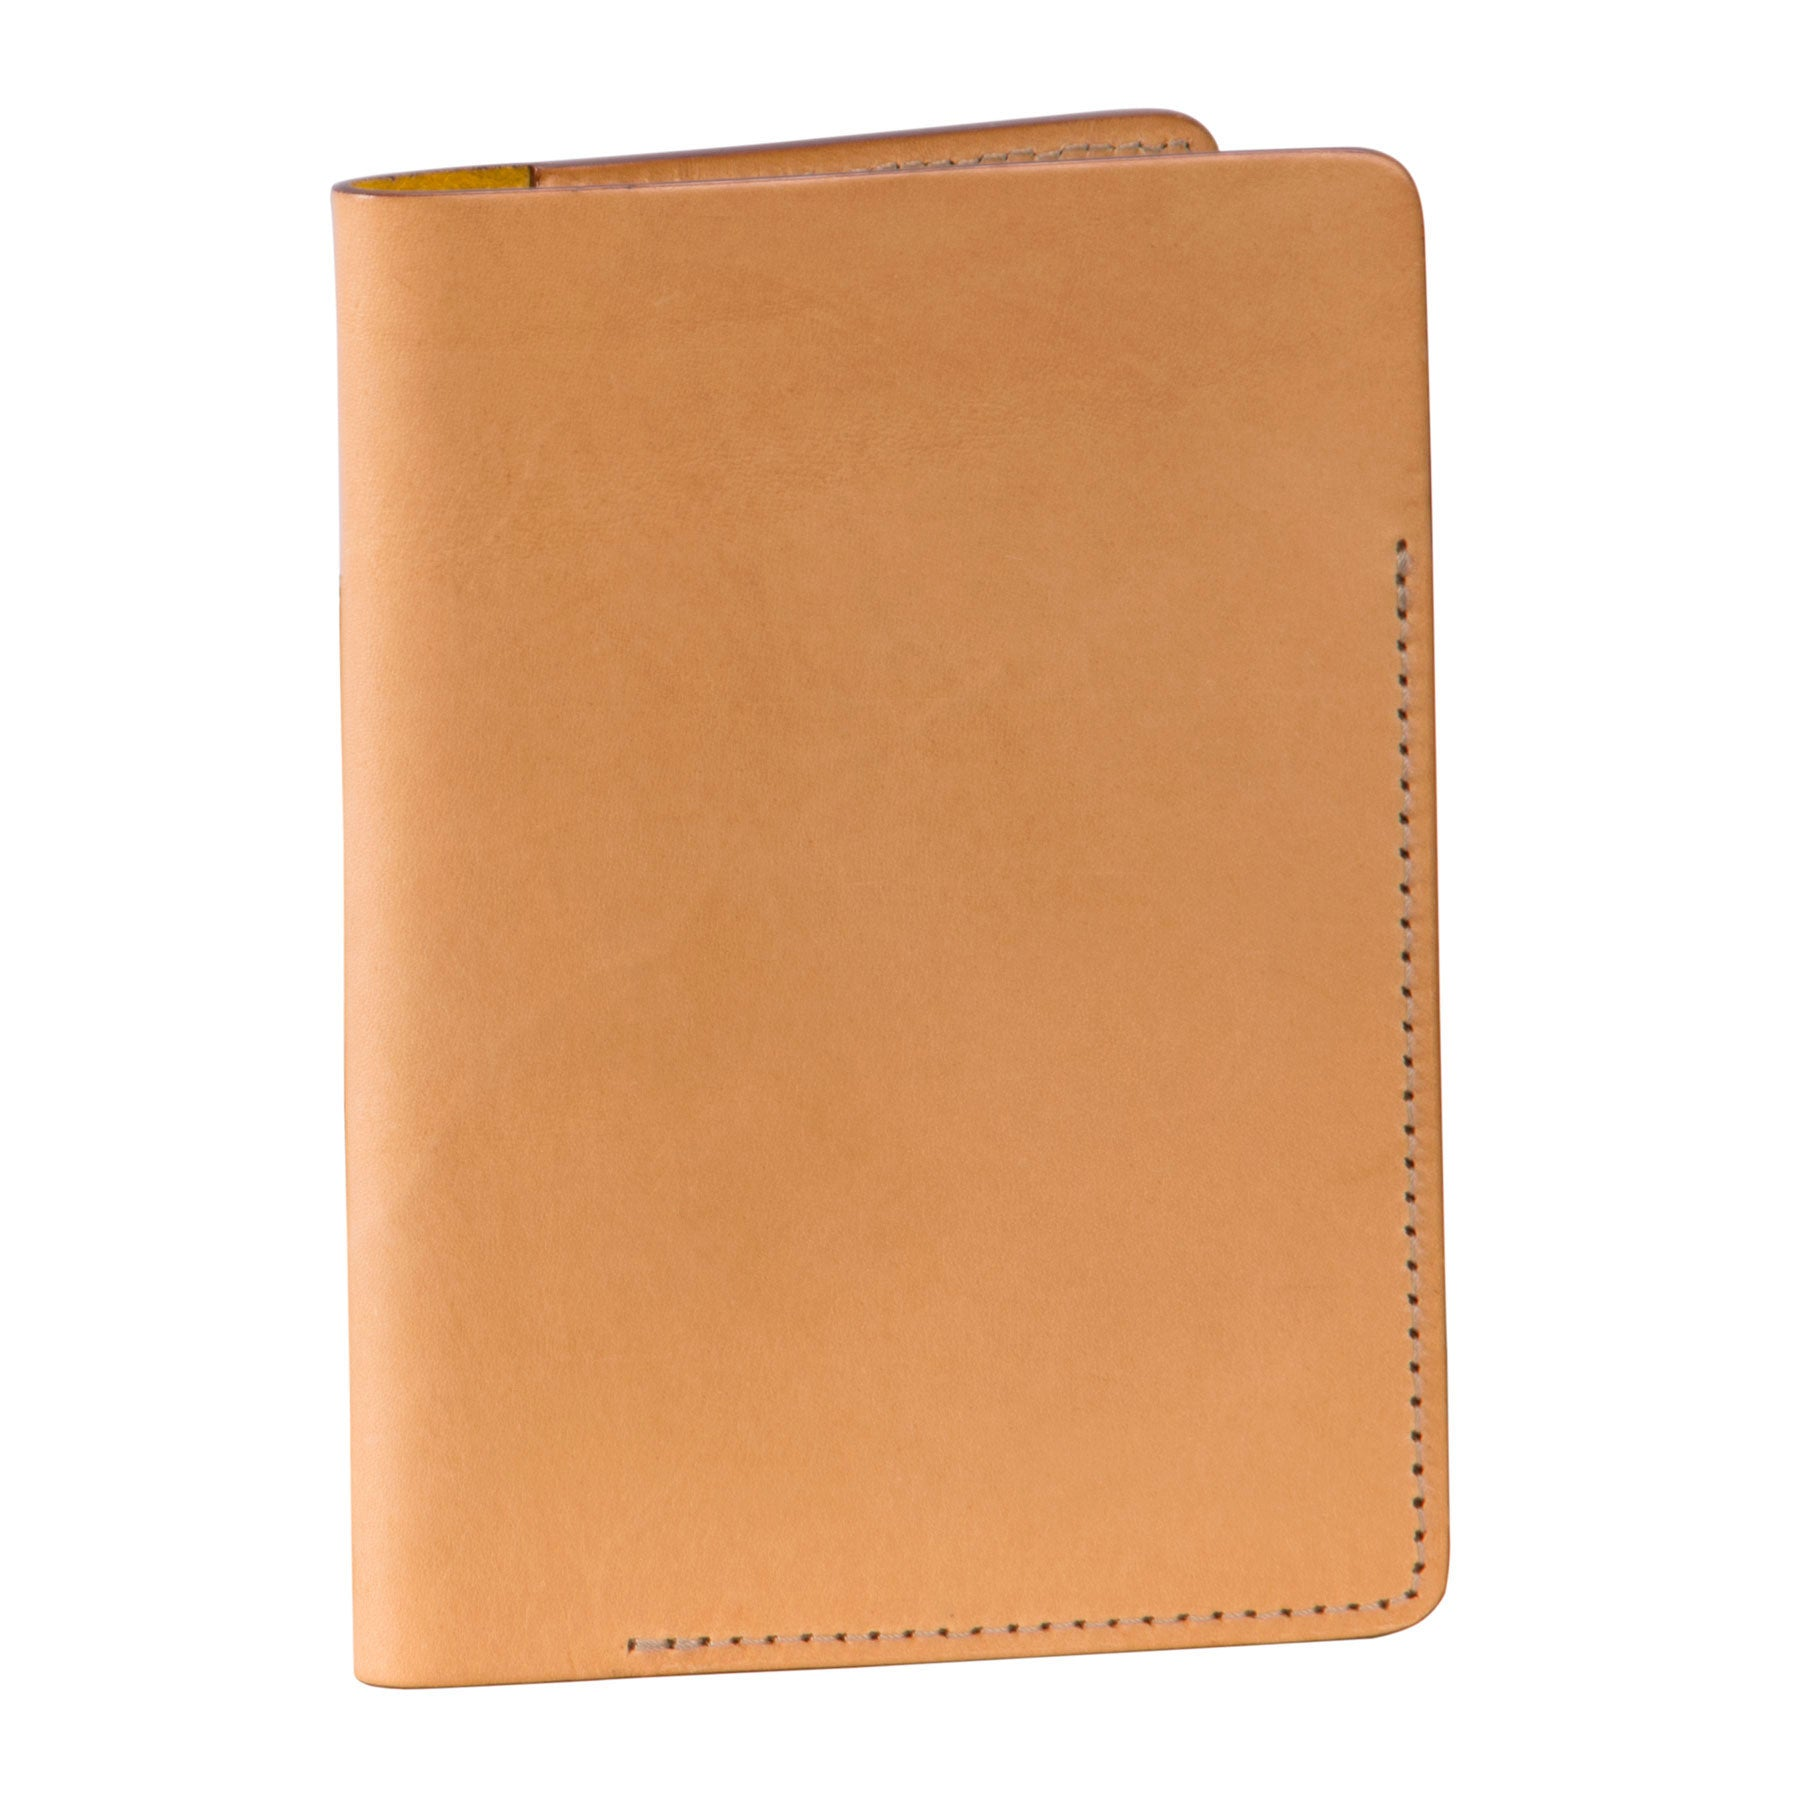 Passport Holder: hand-burnished leather